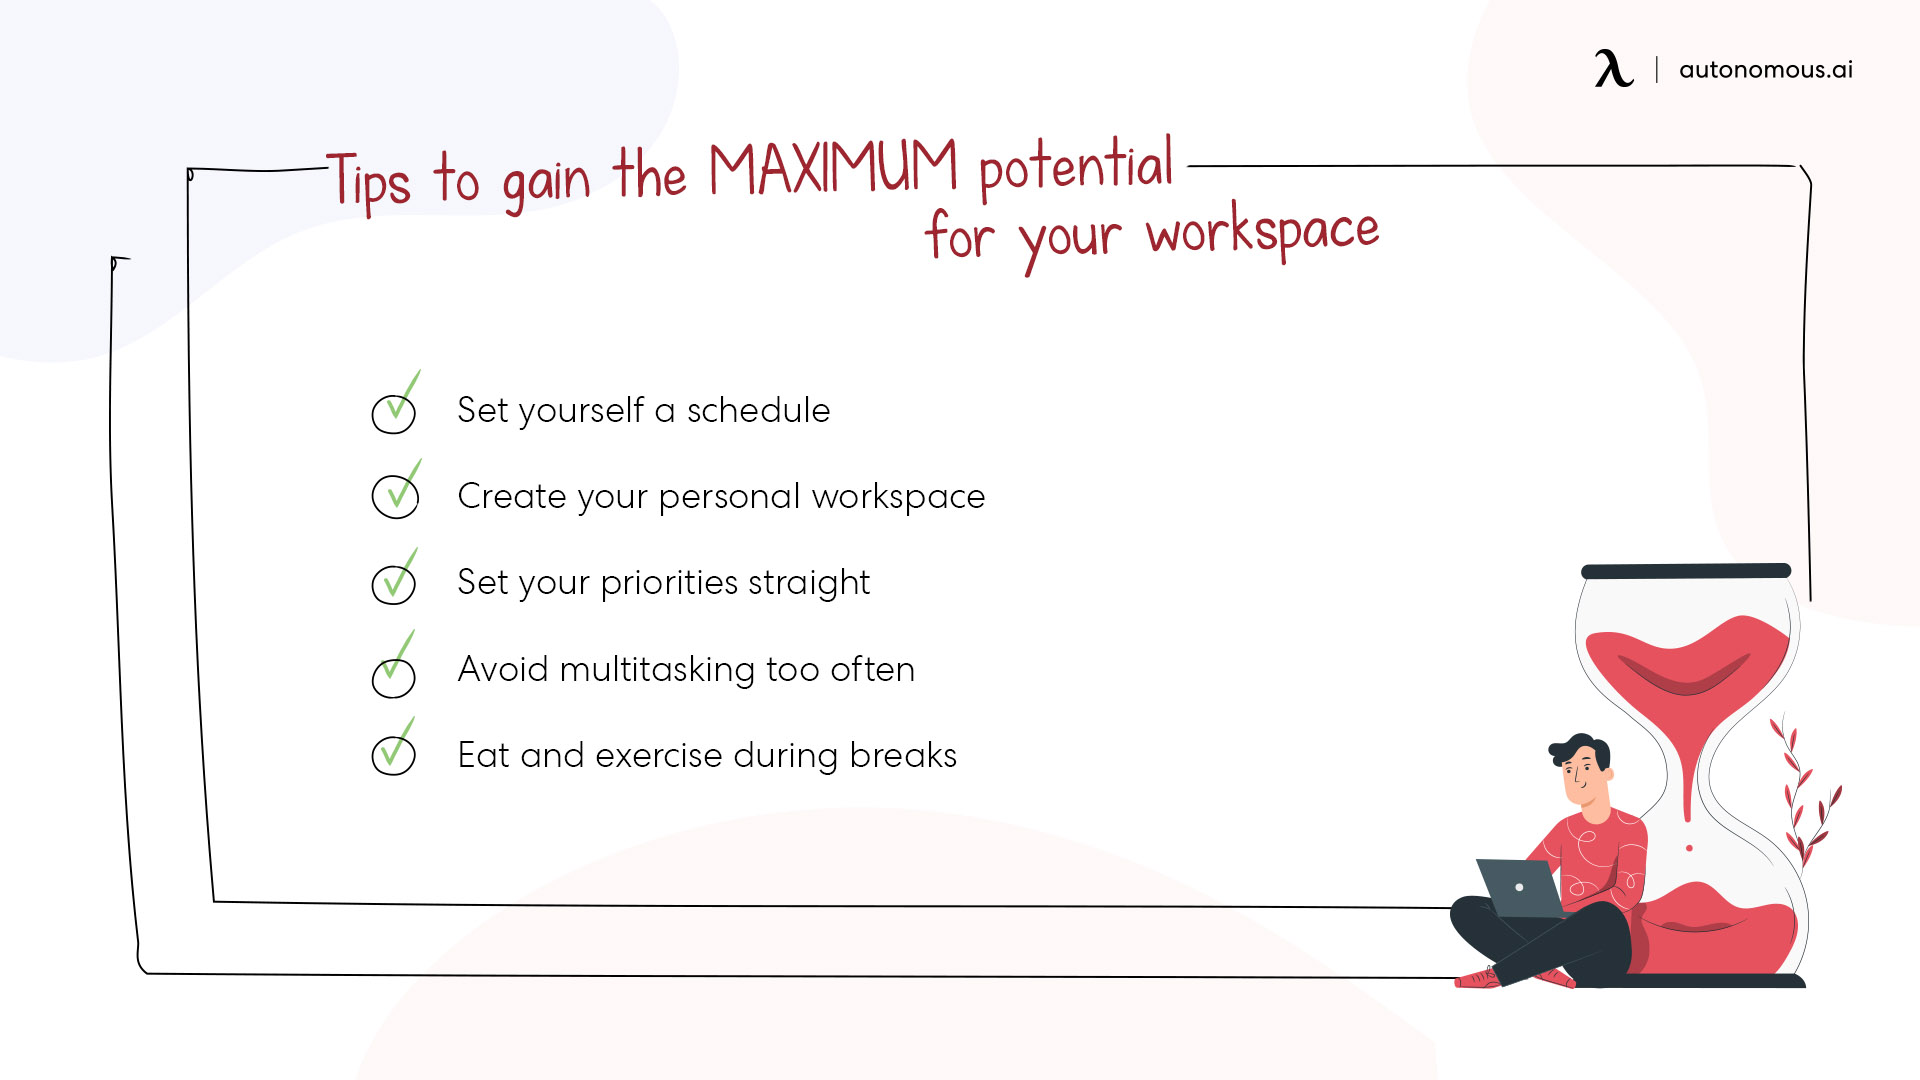 tips to gain the maximum potential for your workspace